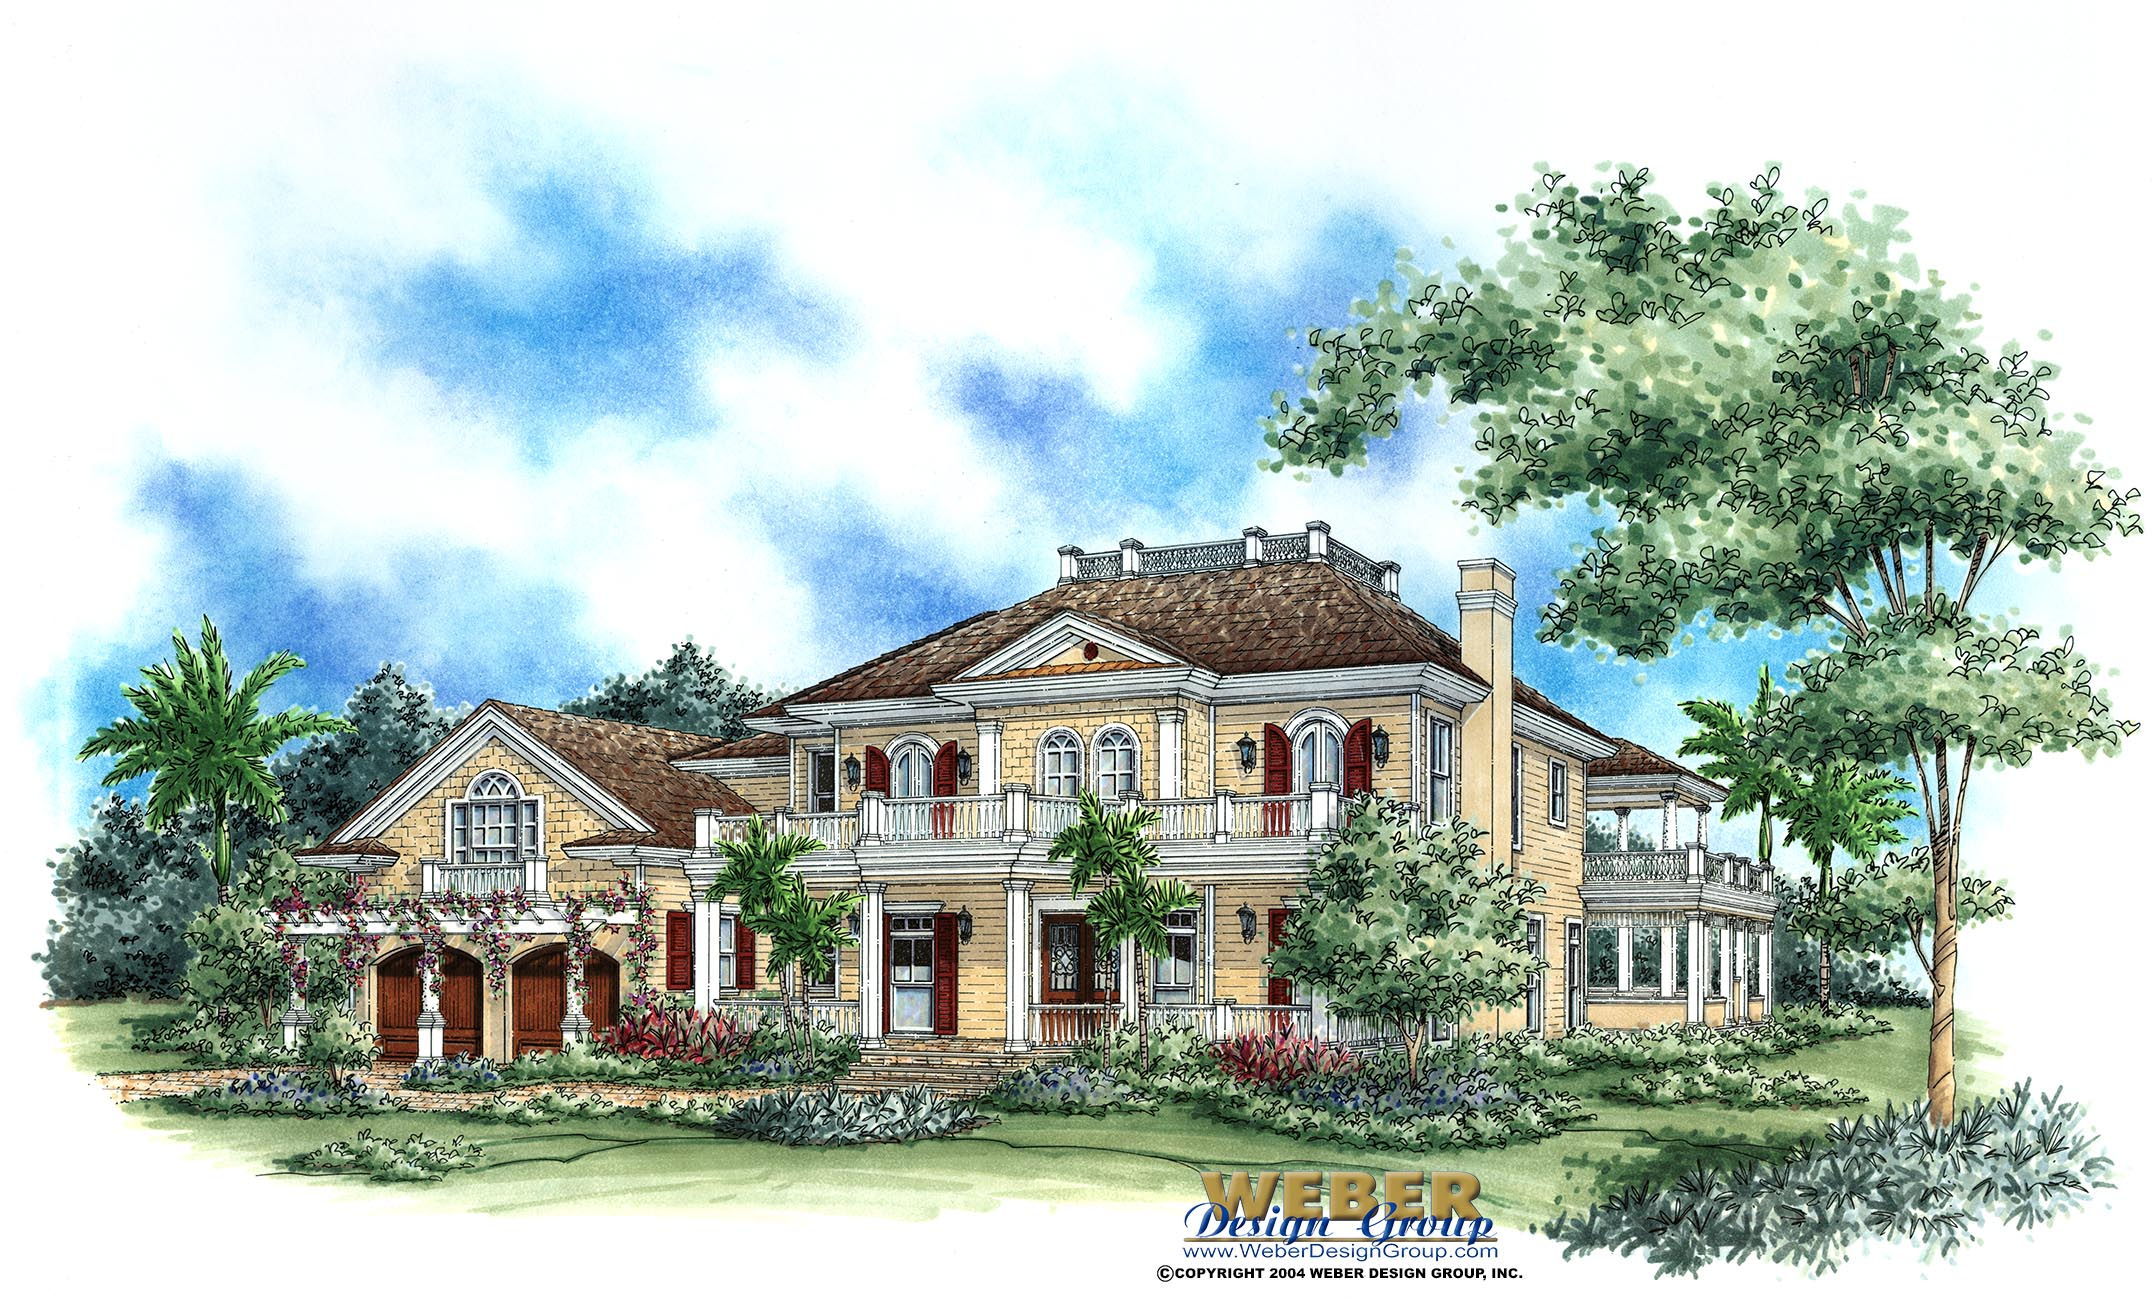 charleston house plans southern style with columns wrap around savannah home plan